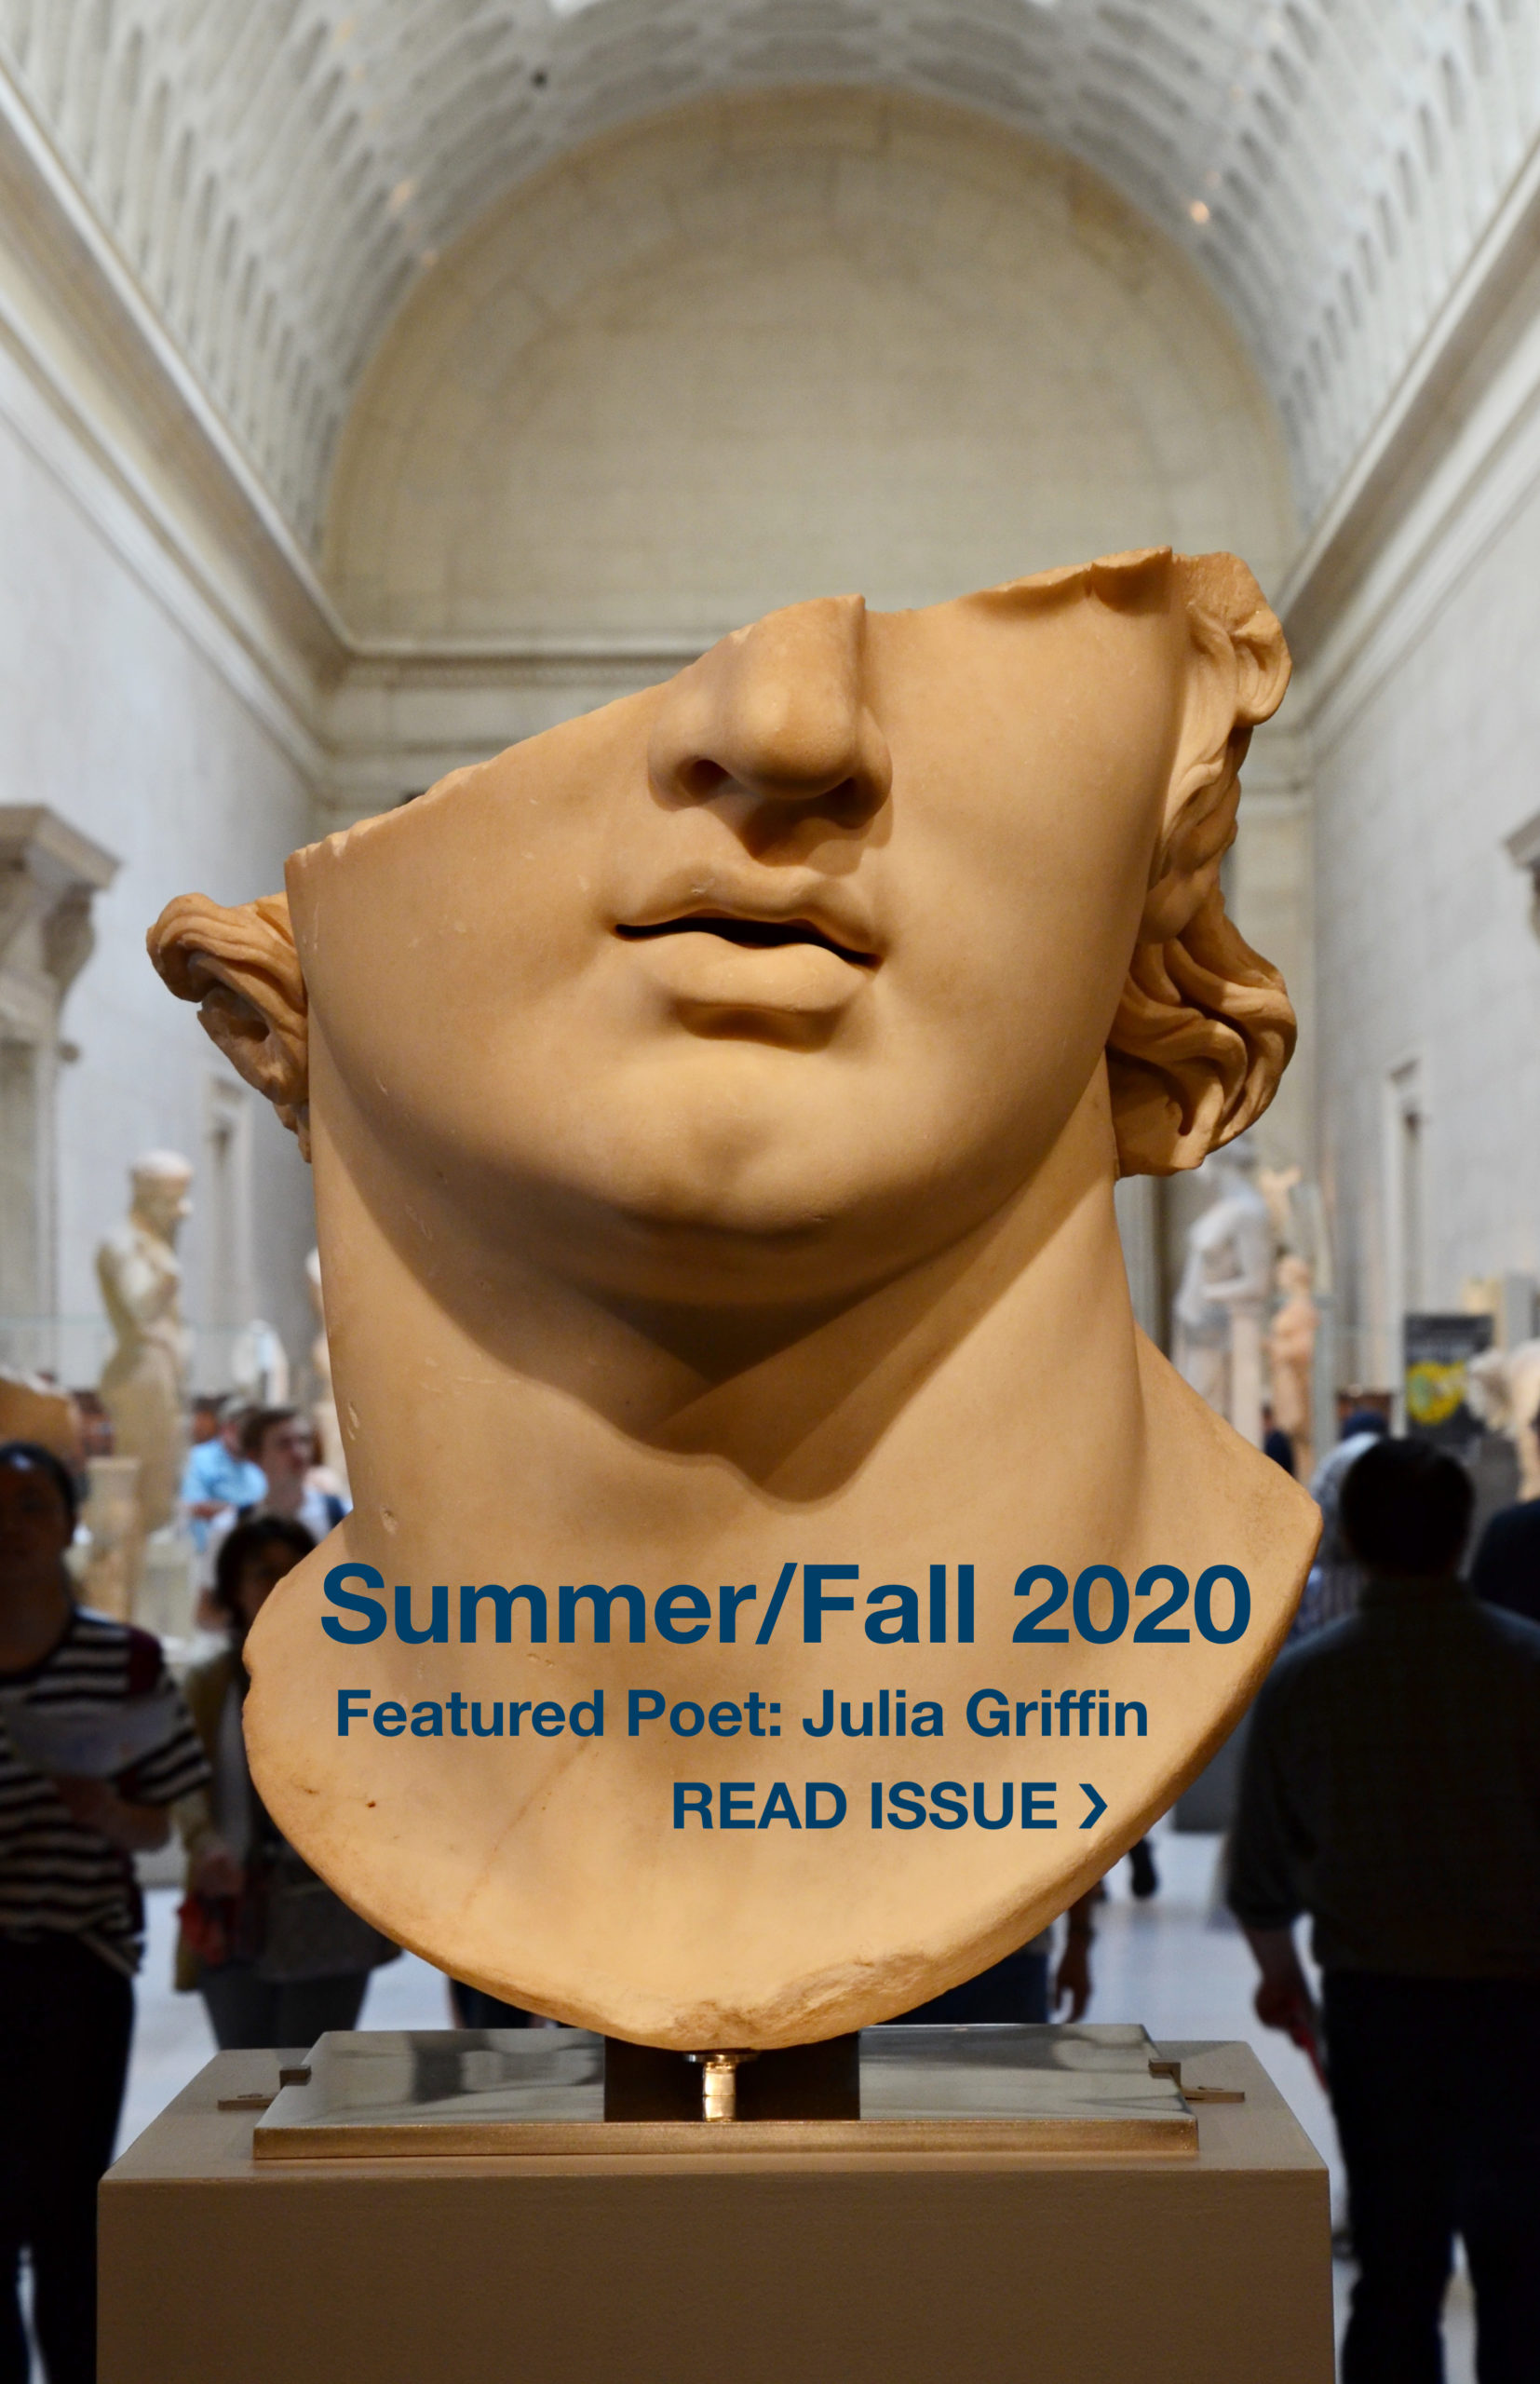 Summer/Fall 2020 - Featured Poet Julia Griffin